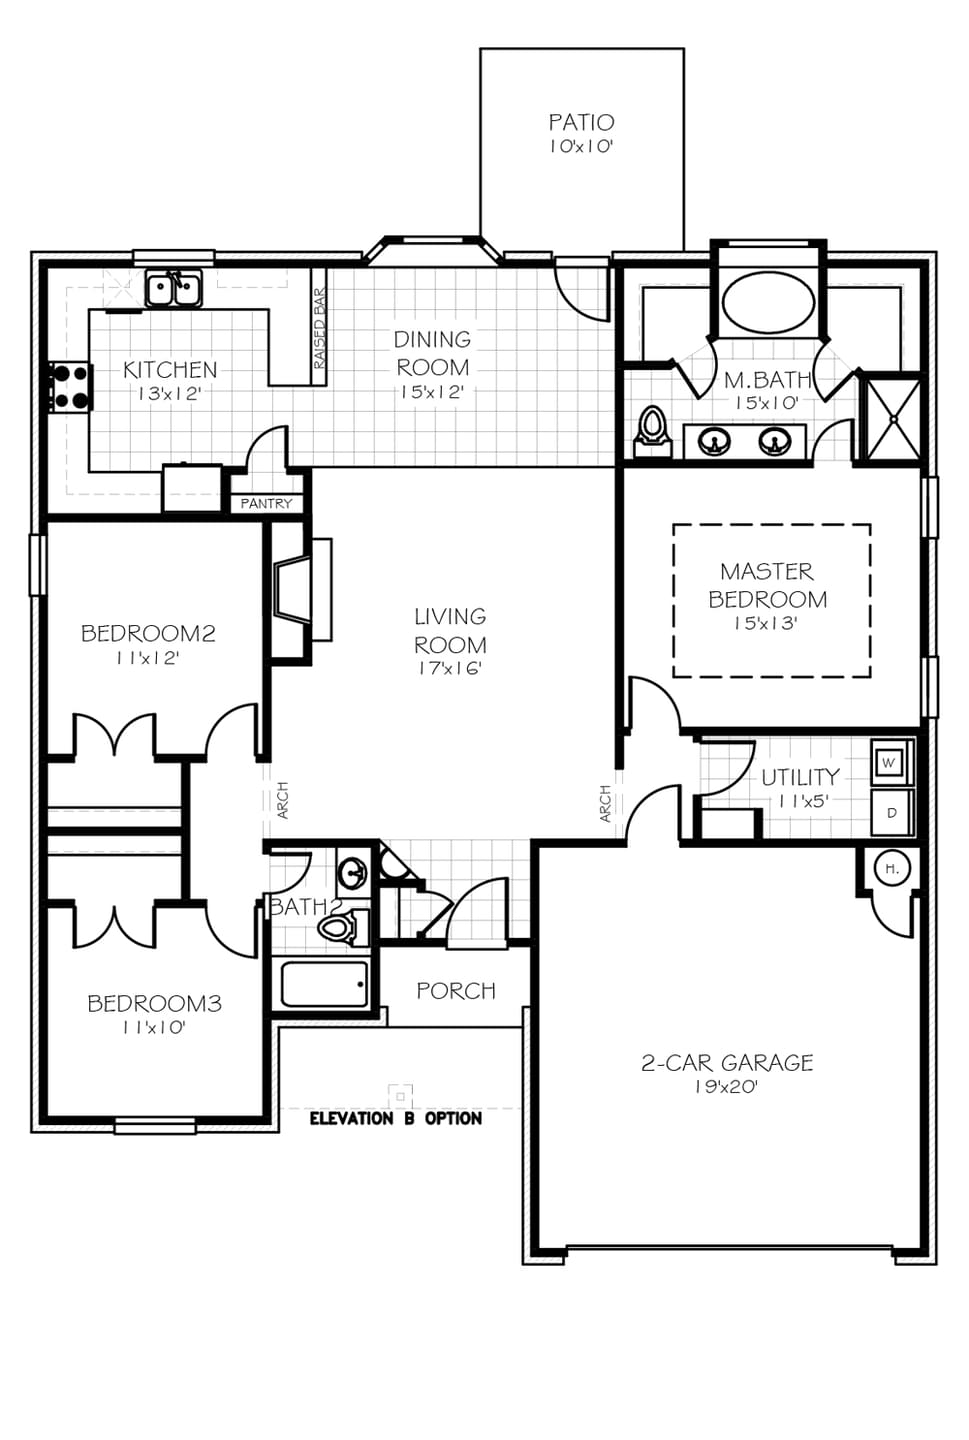 Home Creations Floor Plans Home Design And Style